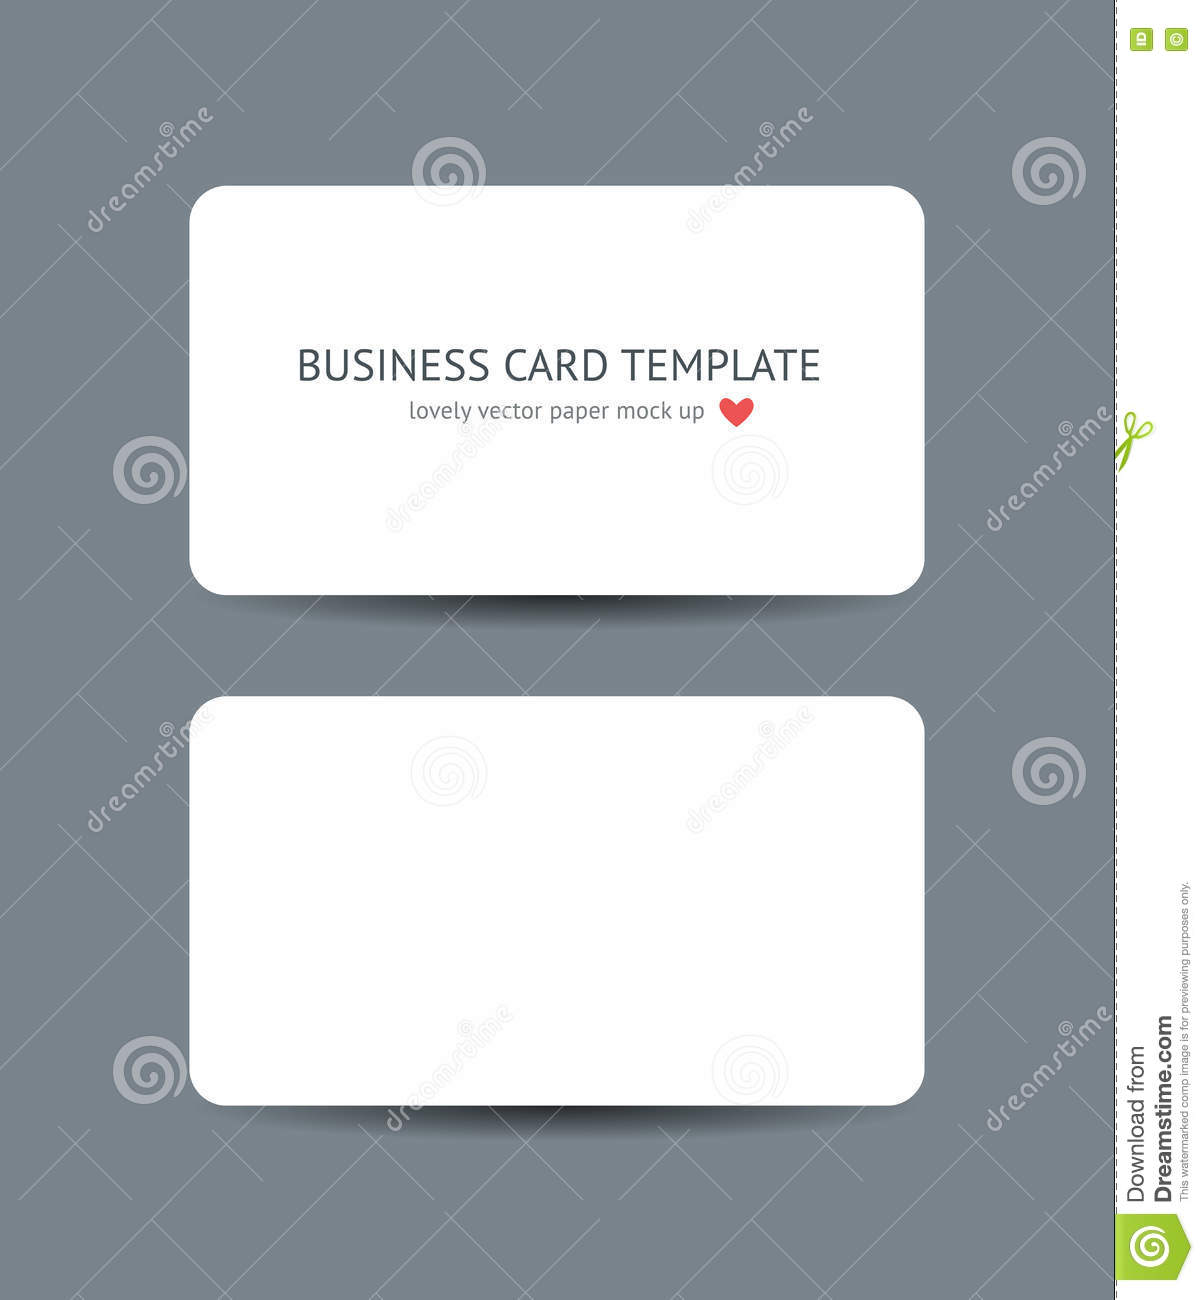 Business cards blank mockup template stock vector illustration of two business cards with round corners template mockup on dark gray background realistic vector white paper card mock up for graphic designers presentations reheart Image collections